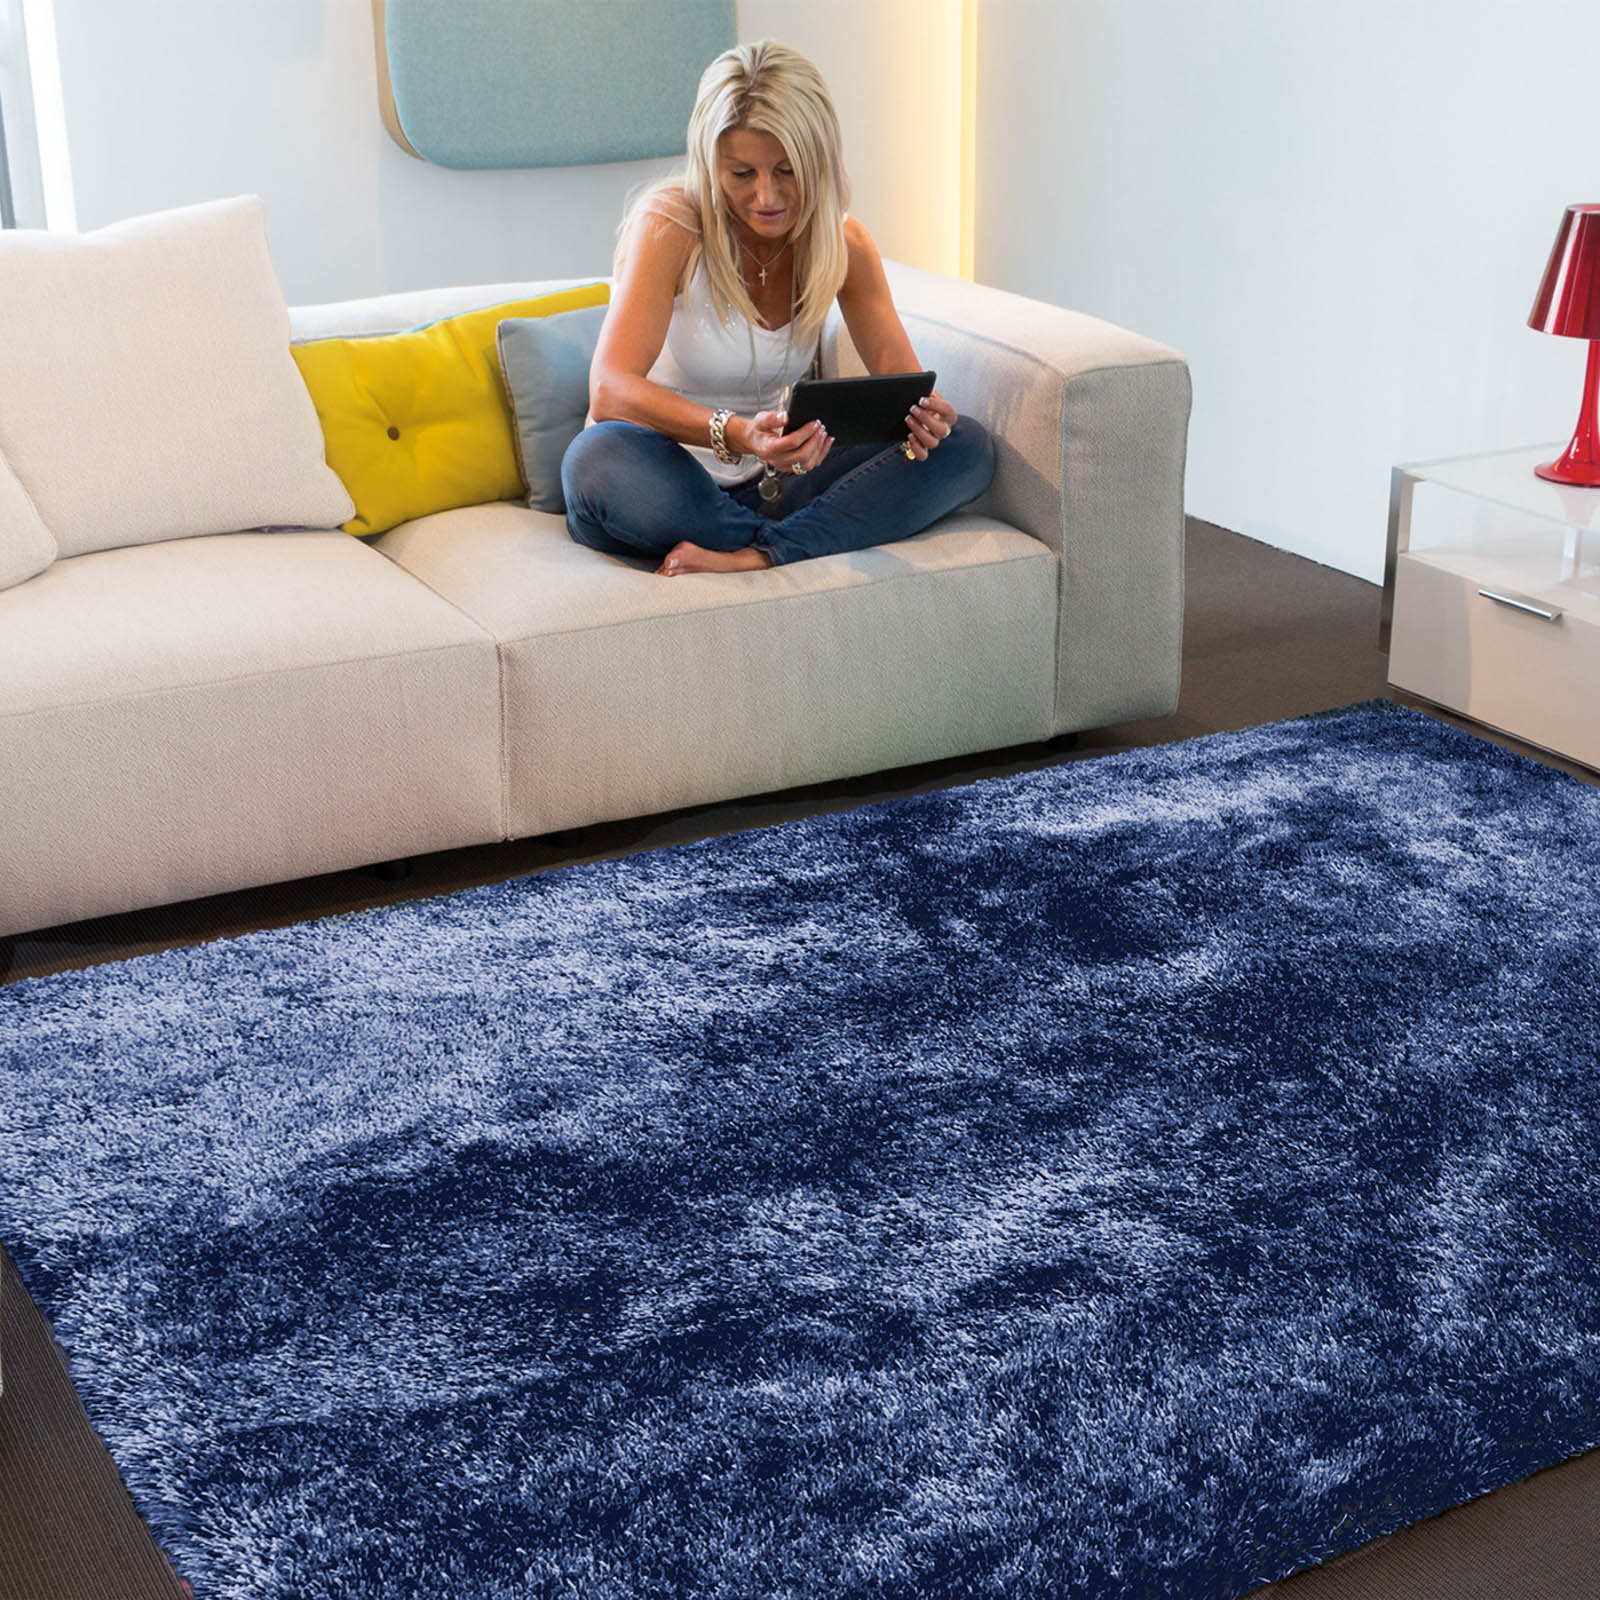 Swing Shaggy Rugs 54 in Midnight Blue